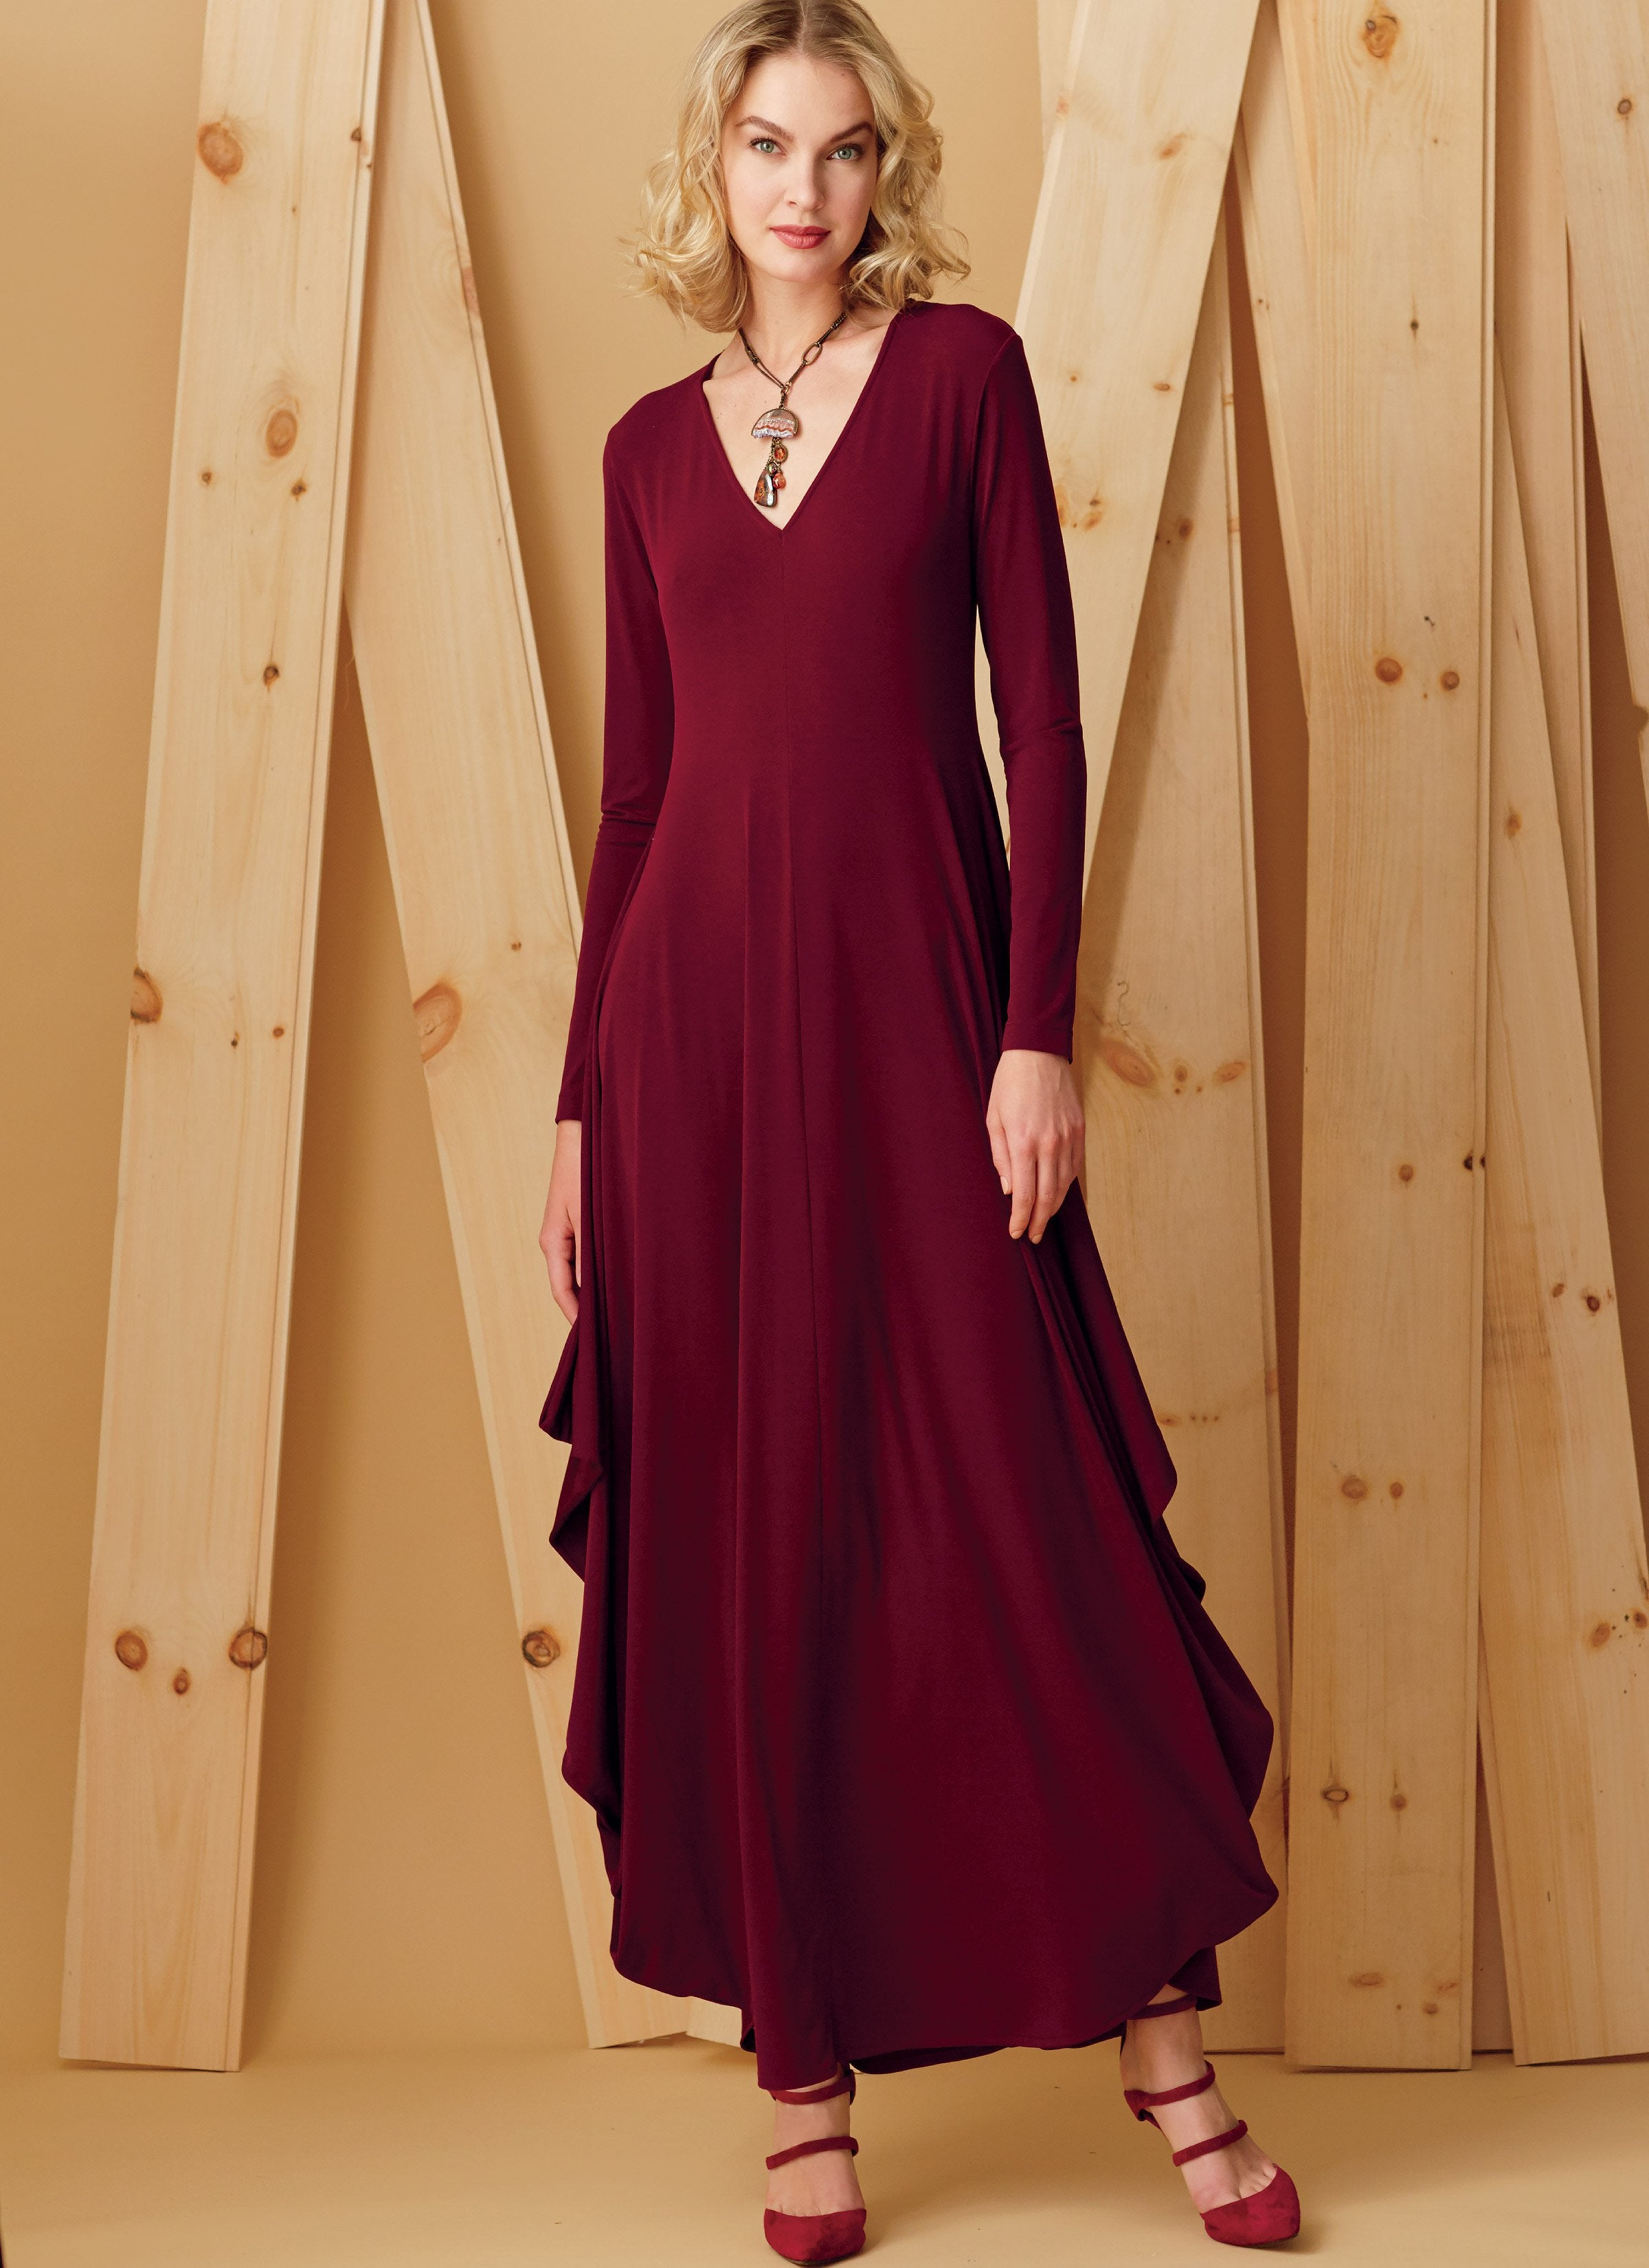 V9268 Misses' Knit, V-Neck, Draped Dresses | Kathryn Brenne